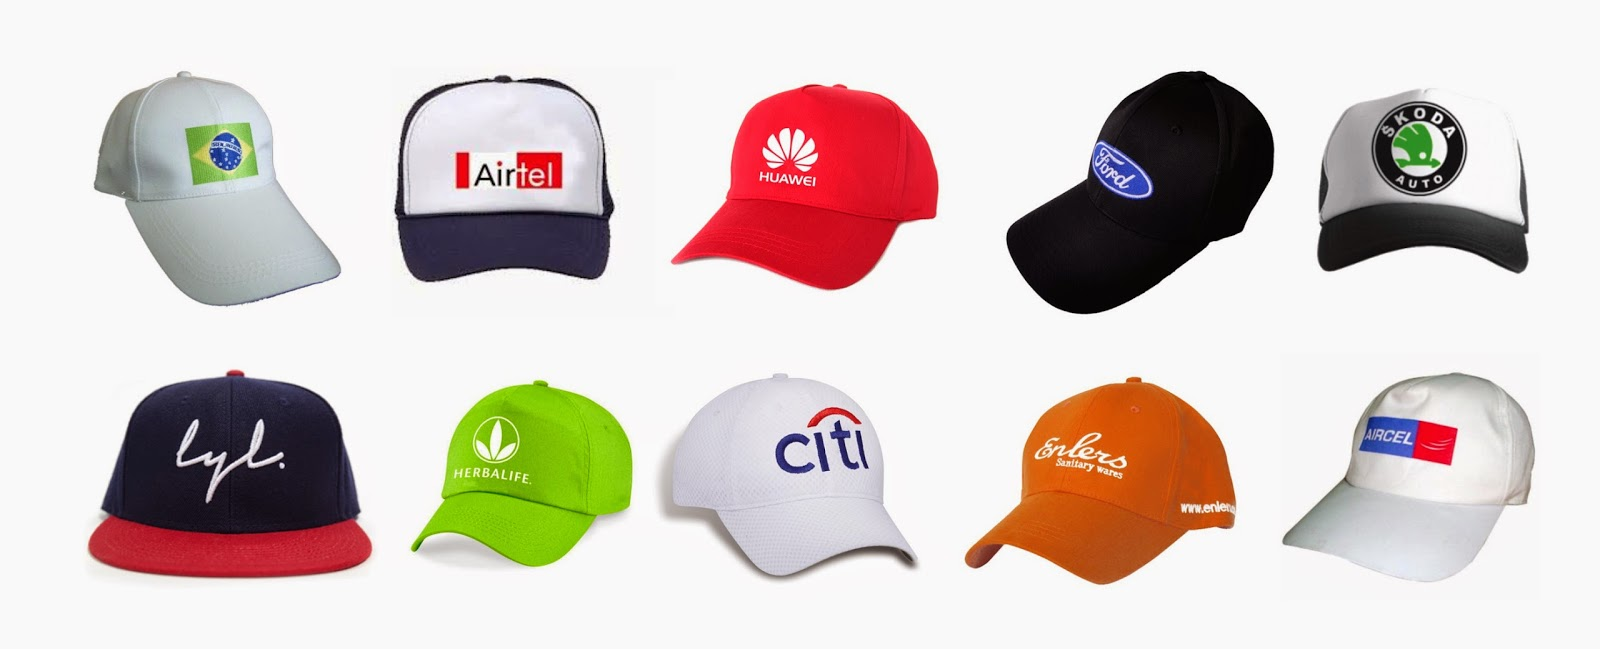 T Shirts with Your logo printing, High Quality T Shirts with